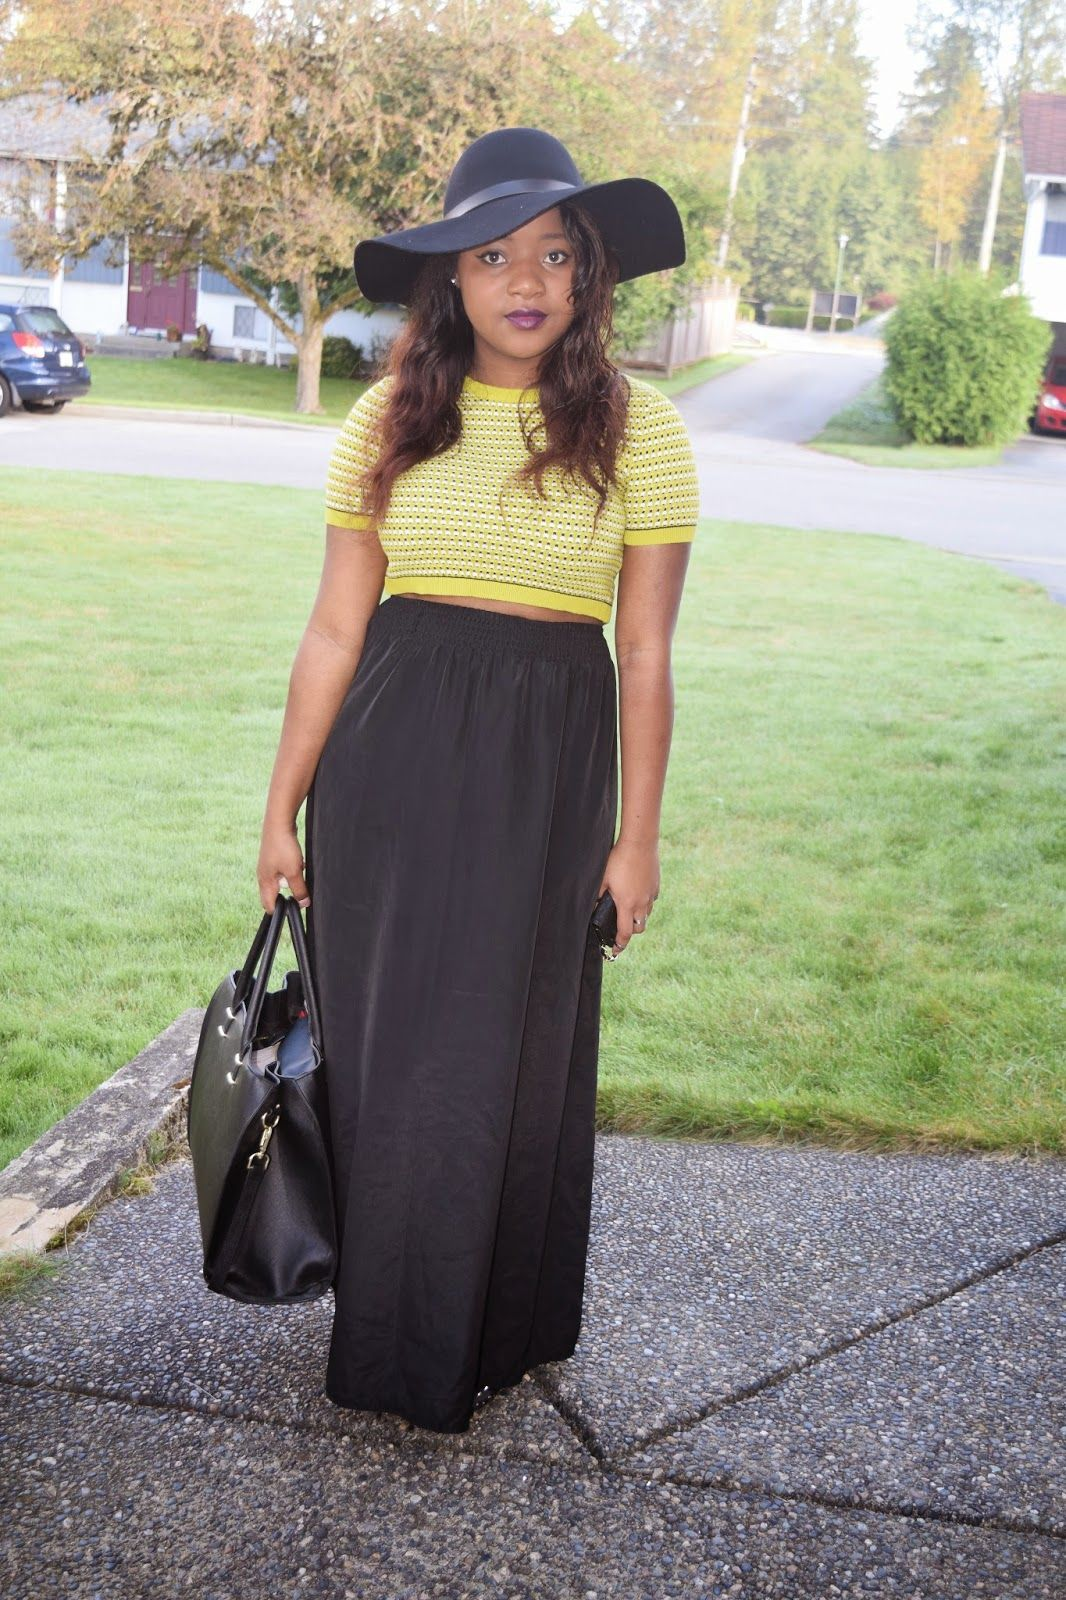 b50e6d3959 SlimThickDiva  FALL READY- MY SULTRY OOTD